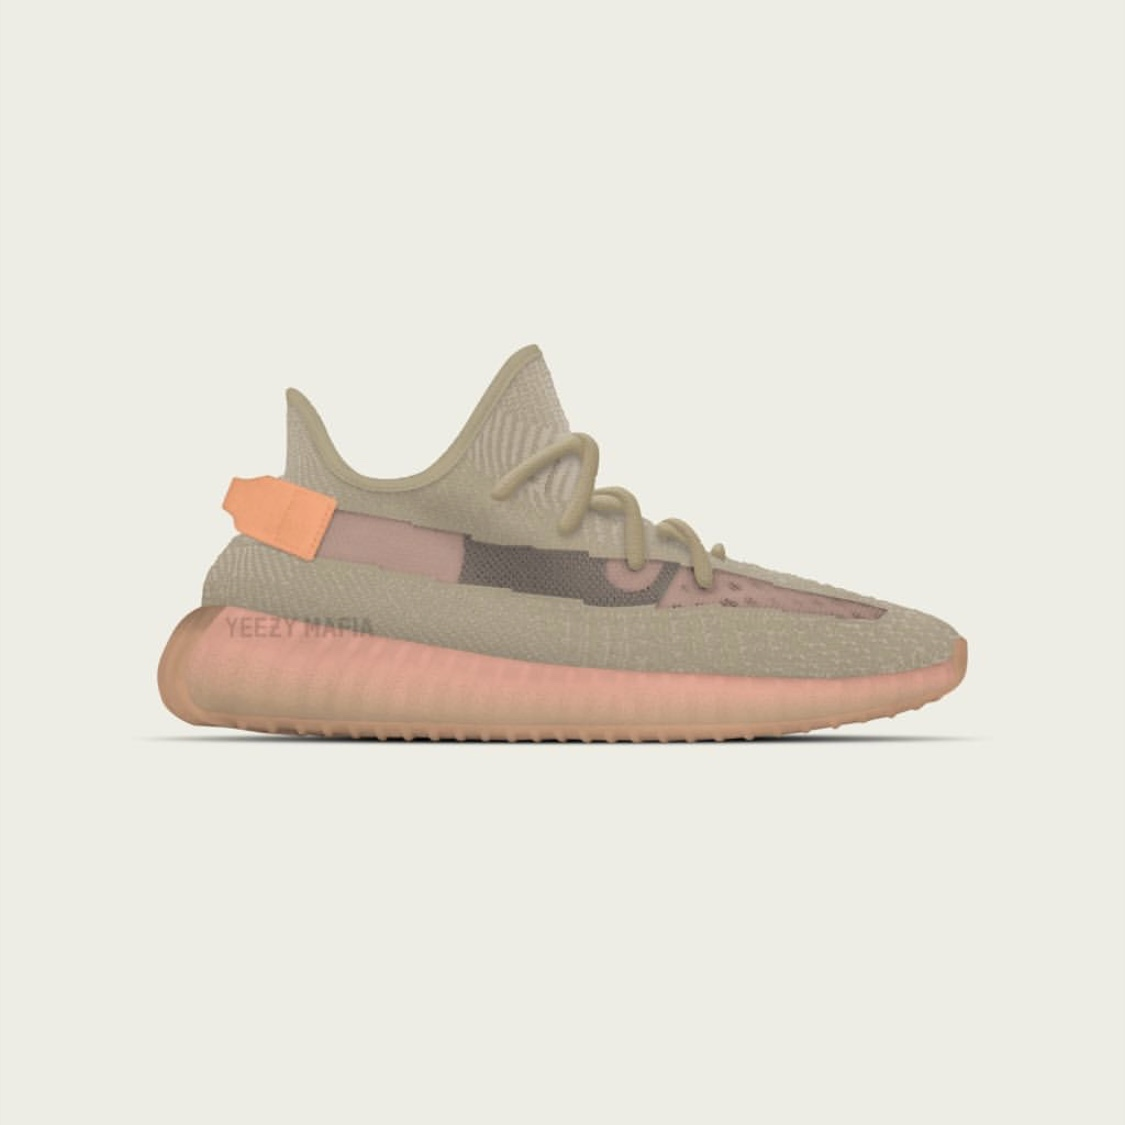 adidas-yeezy-boost-350-v2-clay-special-release